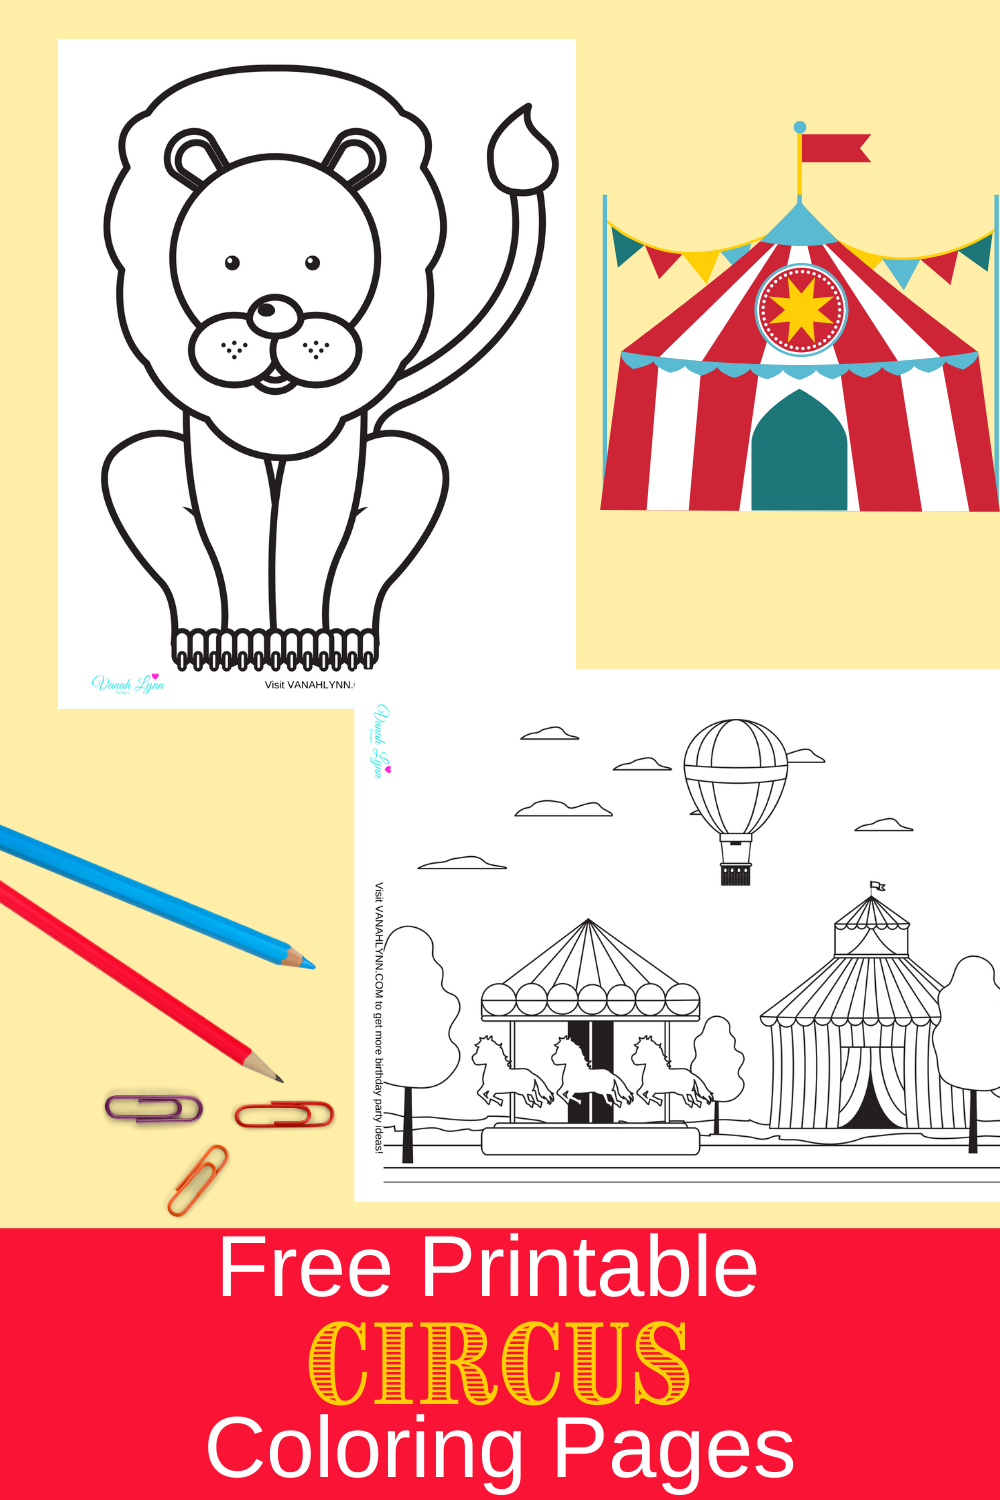 free printable circus themed activities for a birthday party